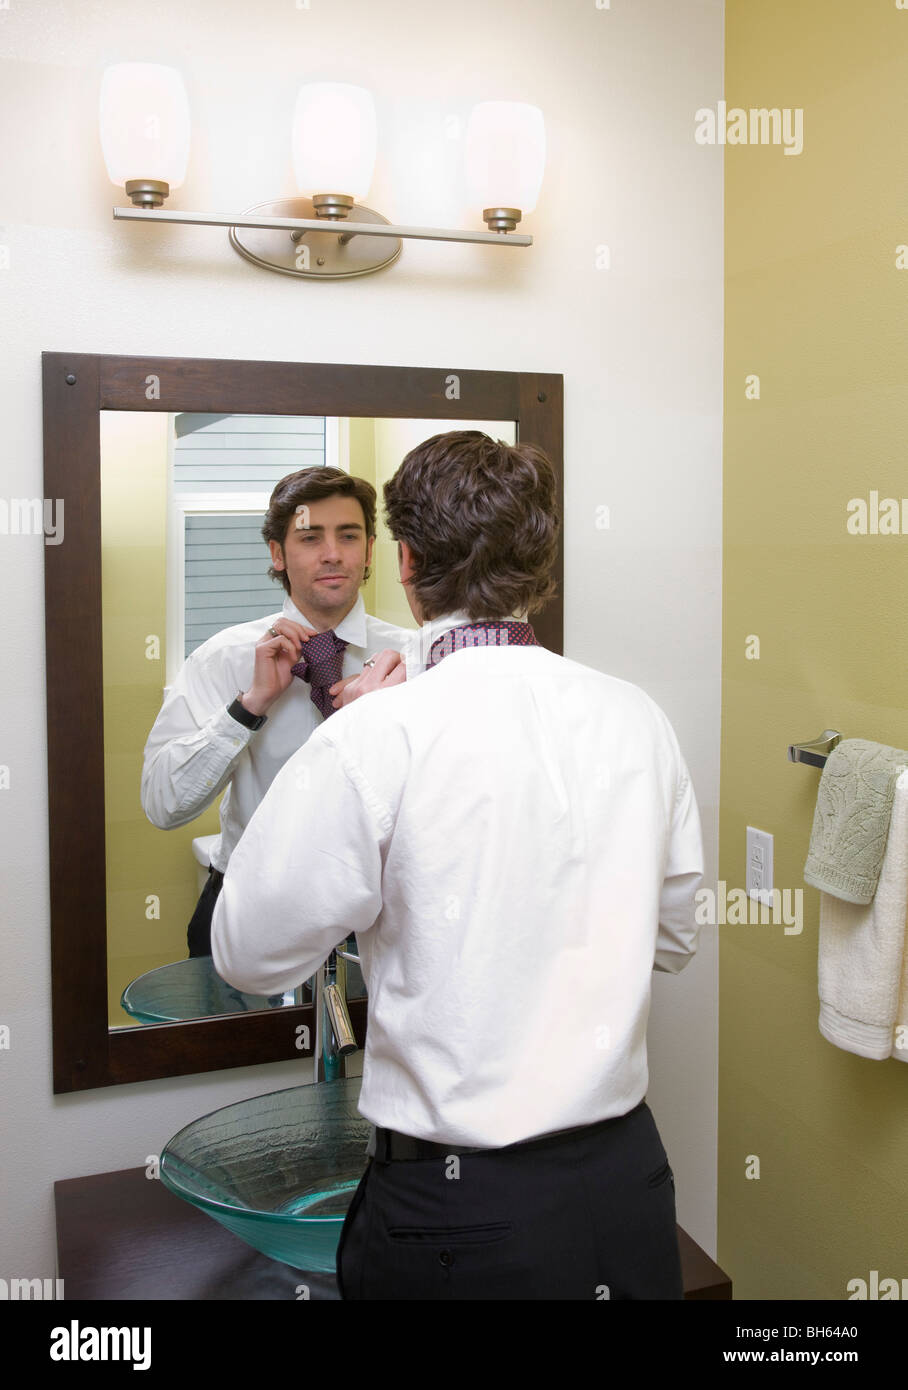 Man Getting Dressed In Mirror Stock Photo 27794648 Alamy